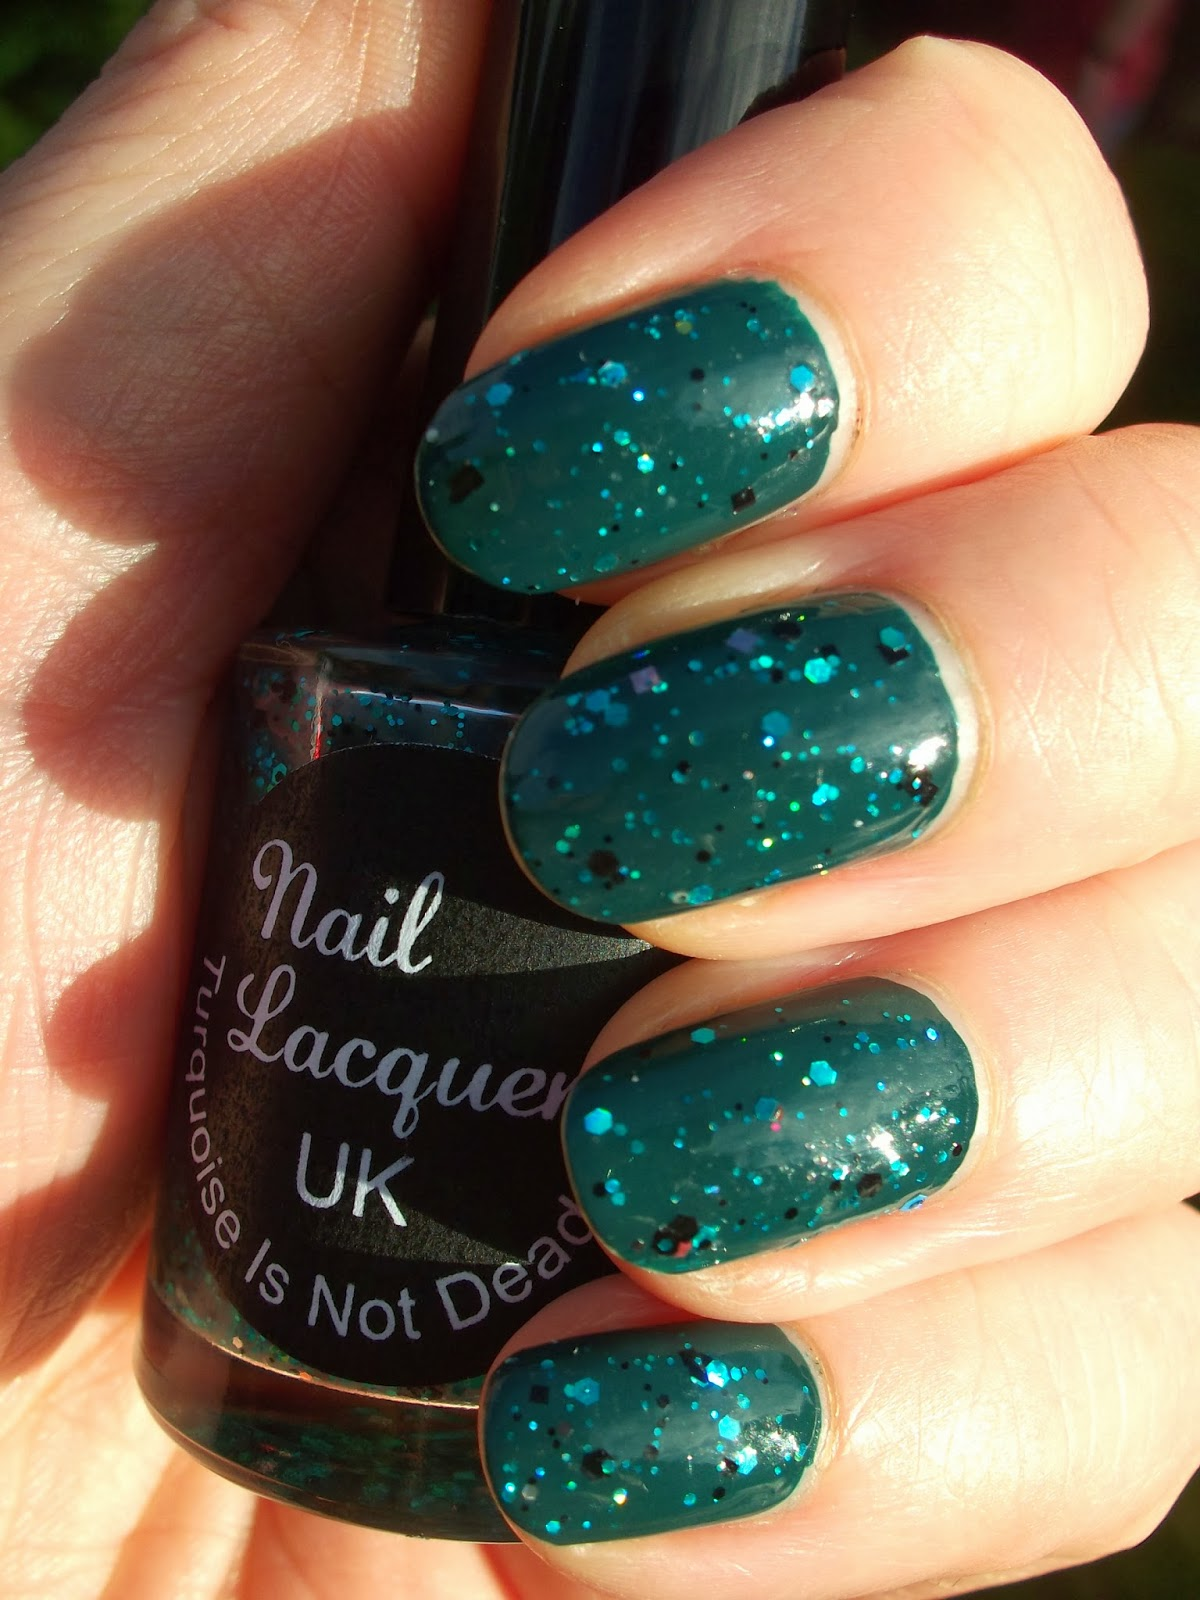 Knitty Nails: Nail Lacquer UK Turquoise Is Not Dead